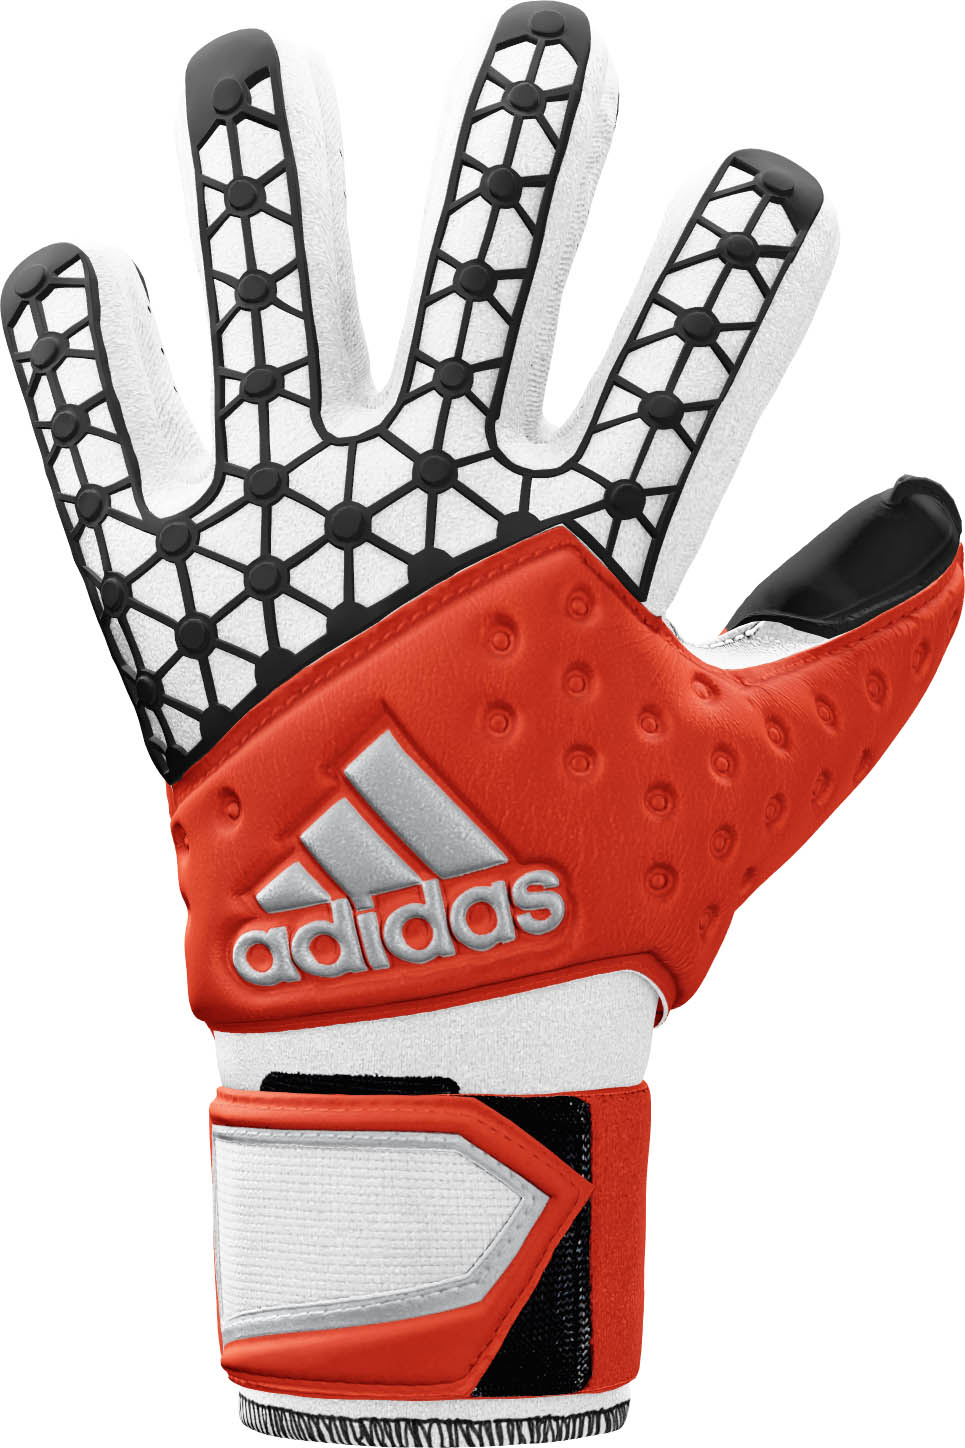 Adidas Ace Zones 2015-2016 Goalkeeper Gloves Released ... |Goalkeeper Gloves Adidas 2015